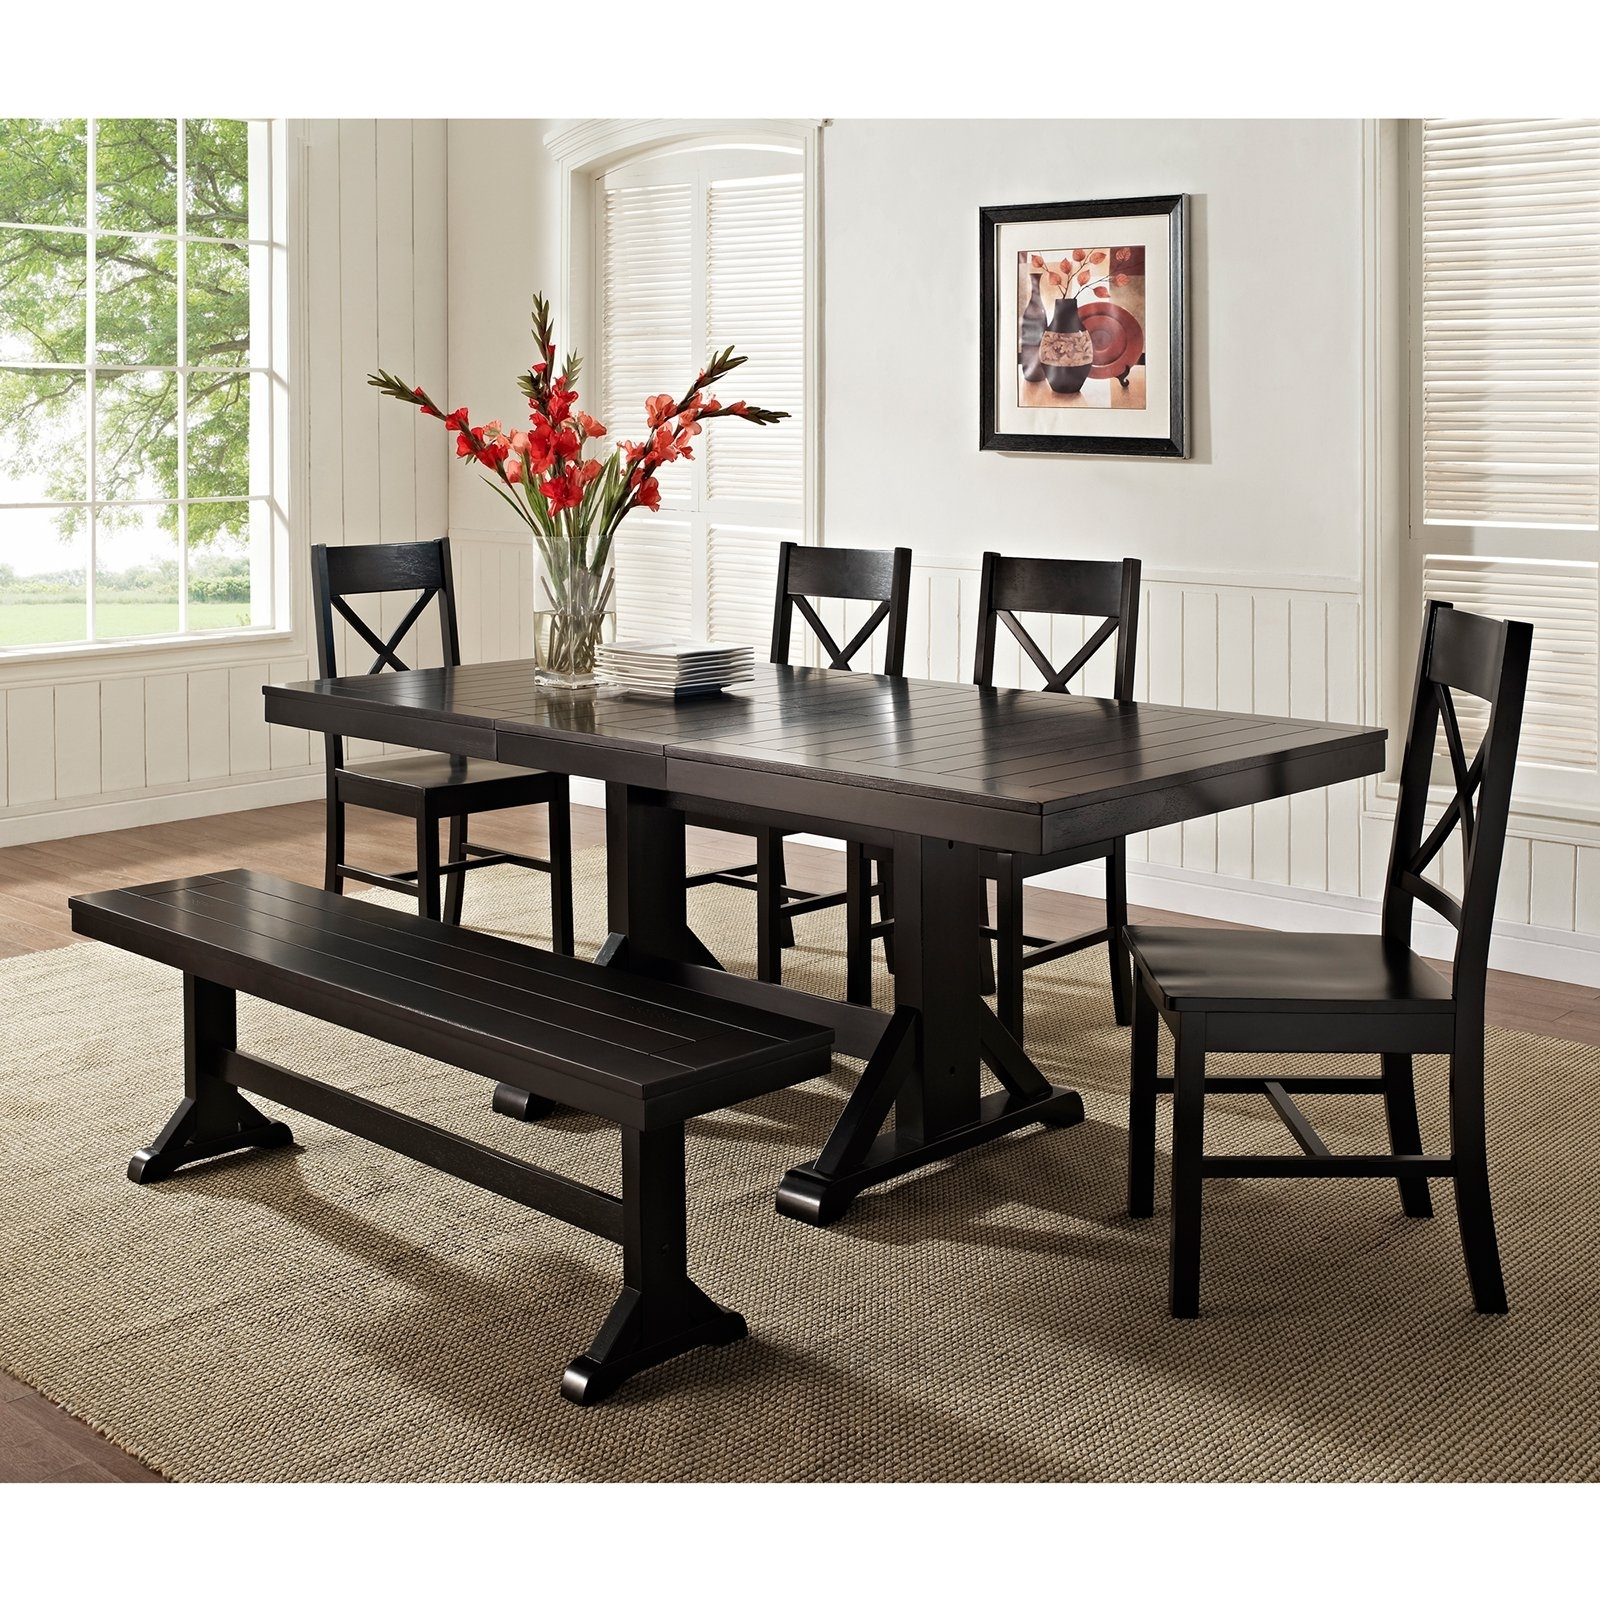 Latest Walker Edison Black 6 Piece Solid Wood Dining Set With Bench With Dark Solid Wood Dining Tables (View 17 of 25)